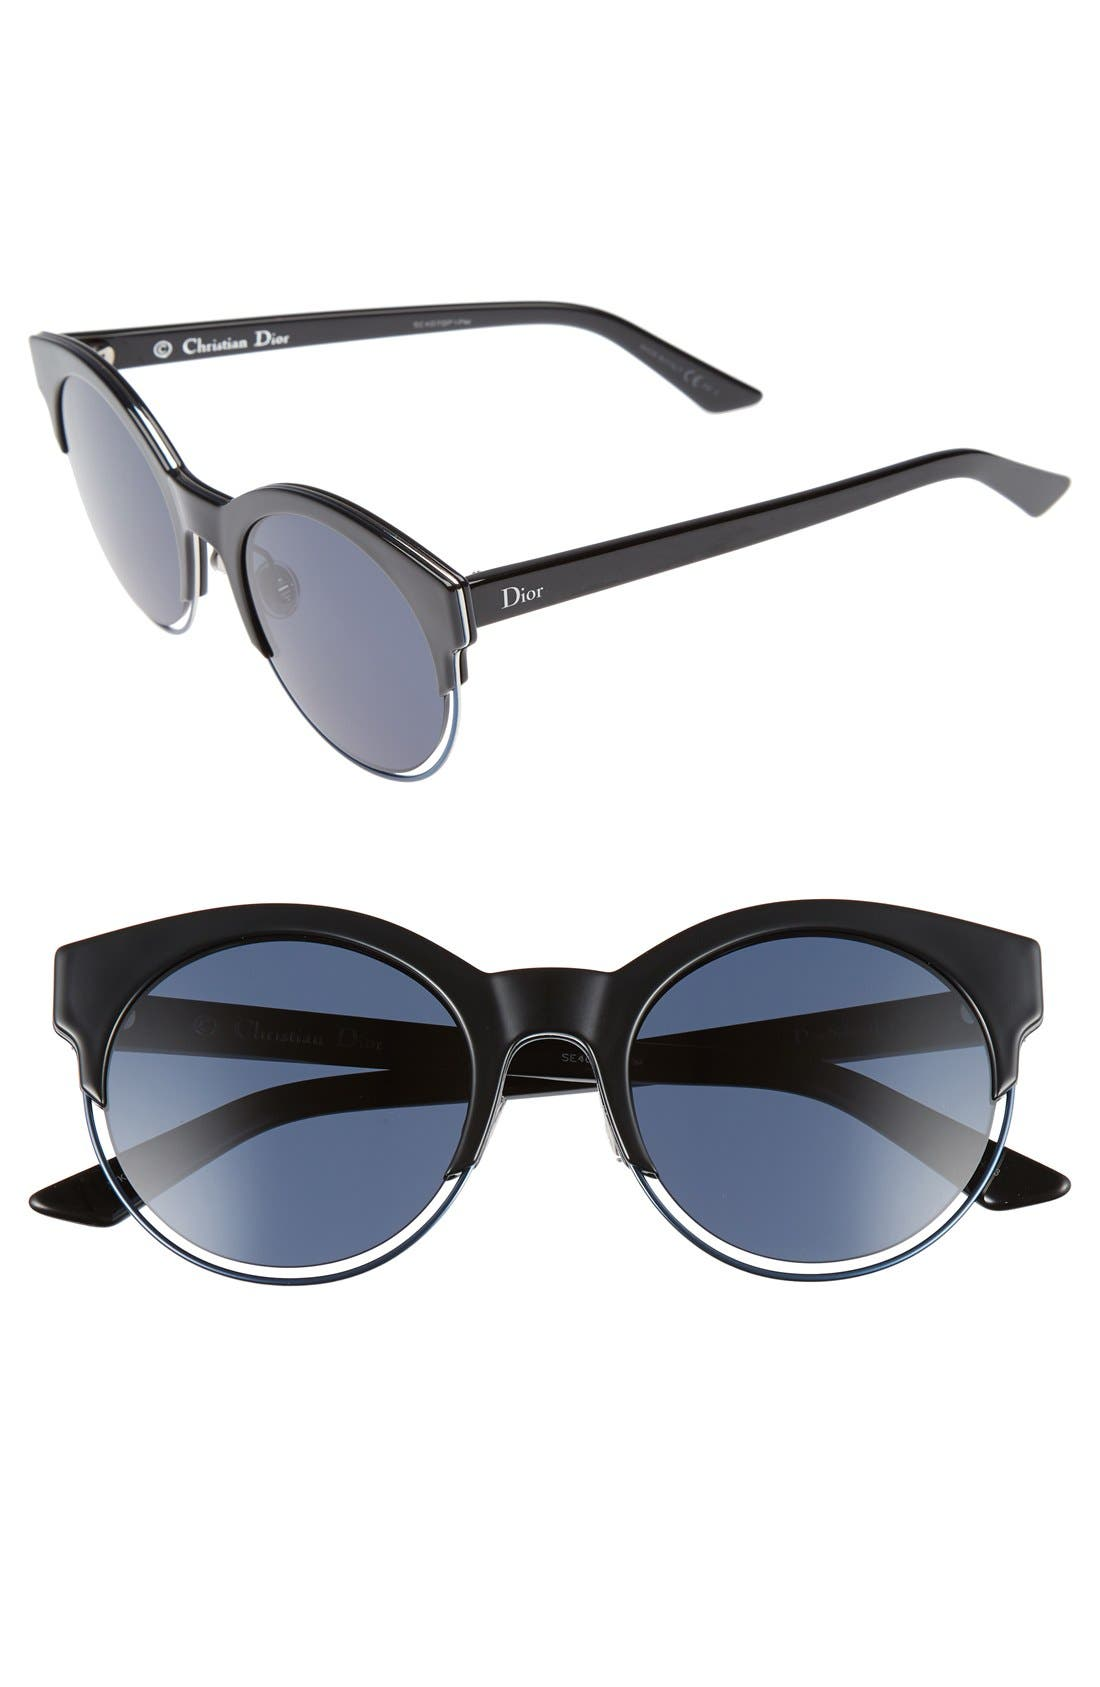 Dior Siderall 1 53mm Round Sunglasses